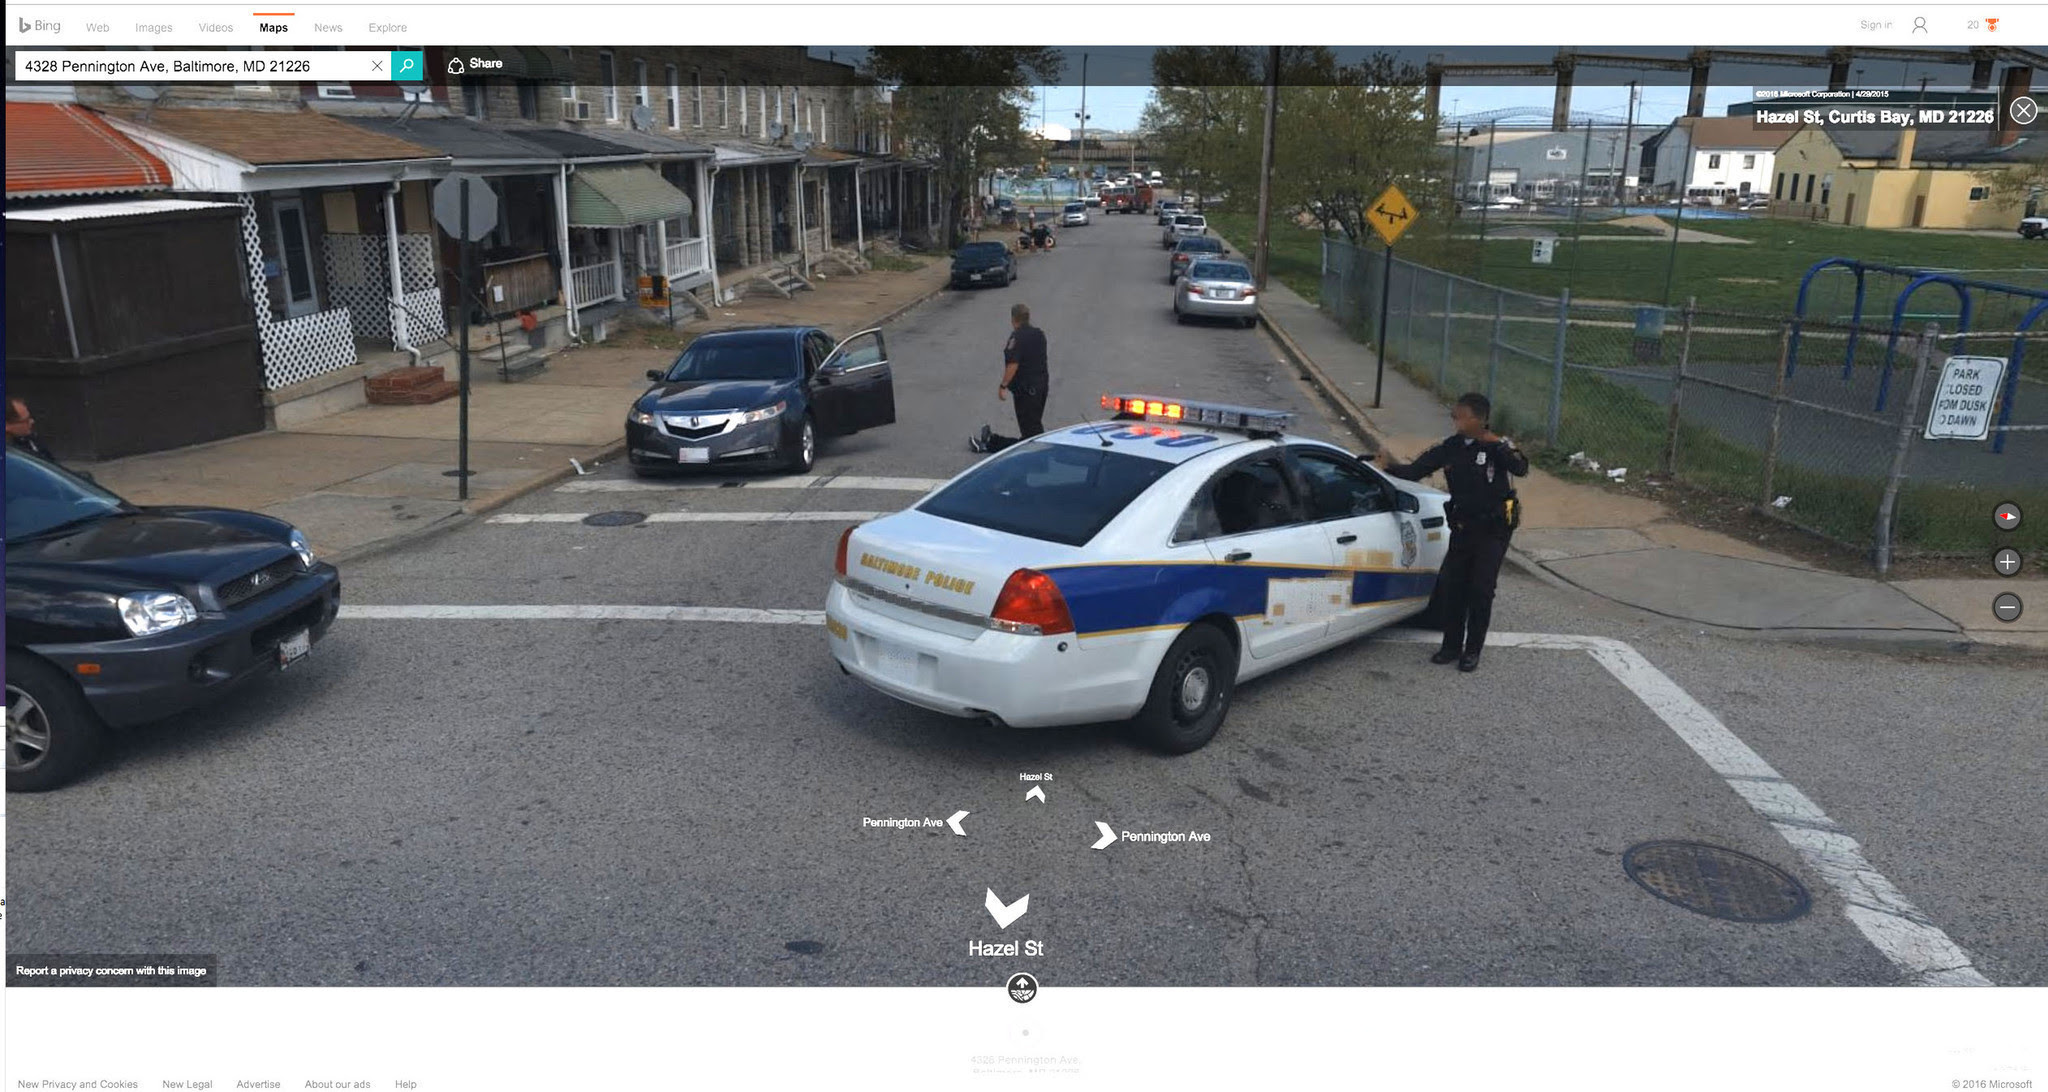 Bing Streetside Edits Images Showing Baltimore Homicide